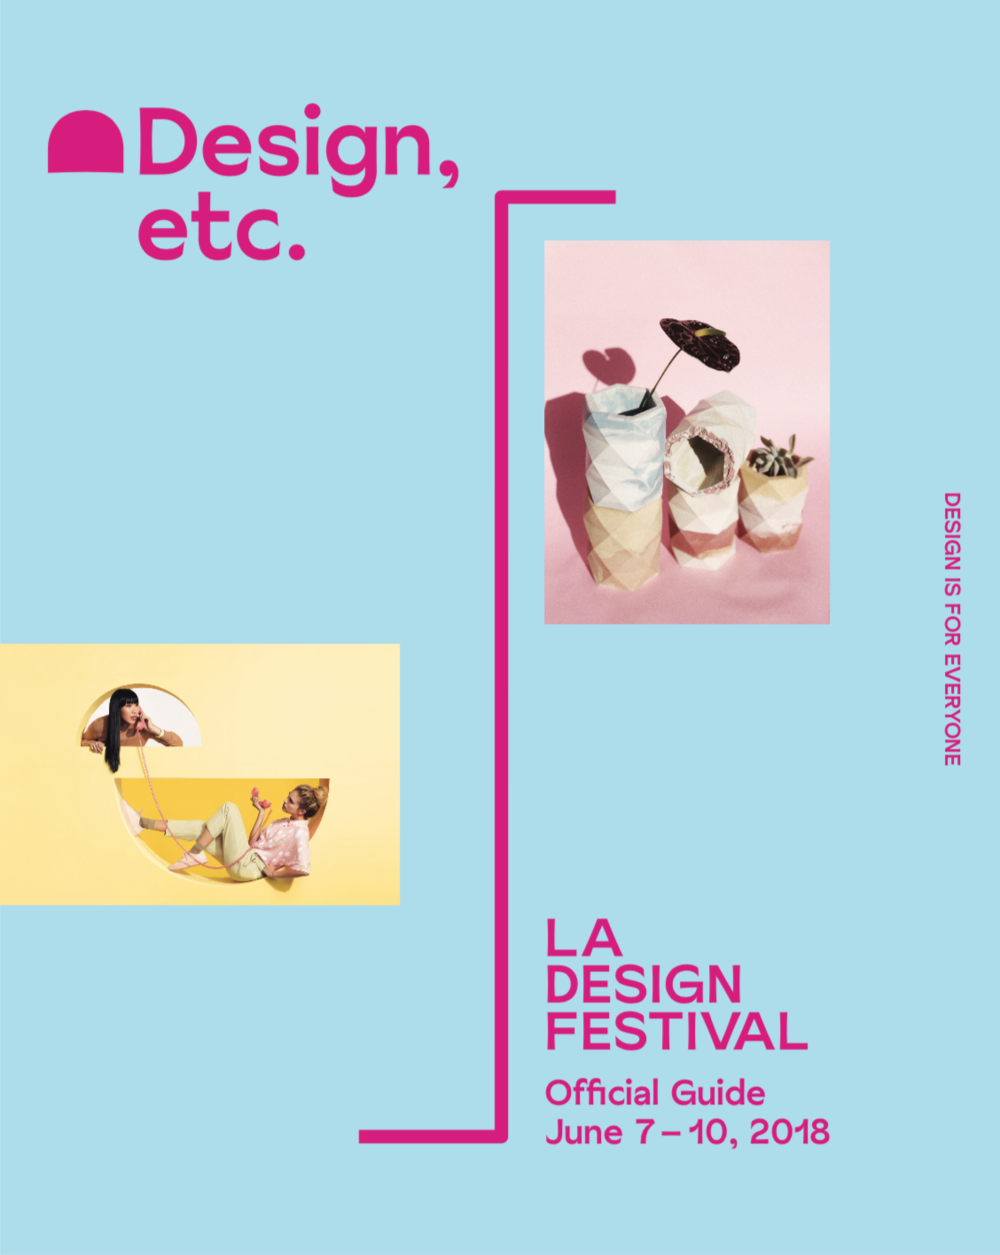 Design, etc. Magazine    - The LA Design Festival Magazine